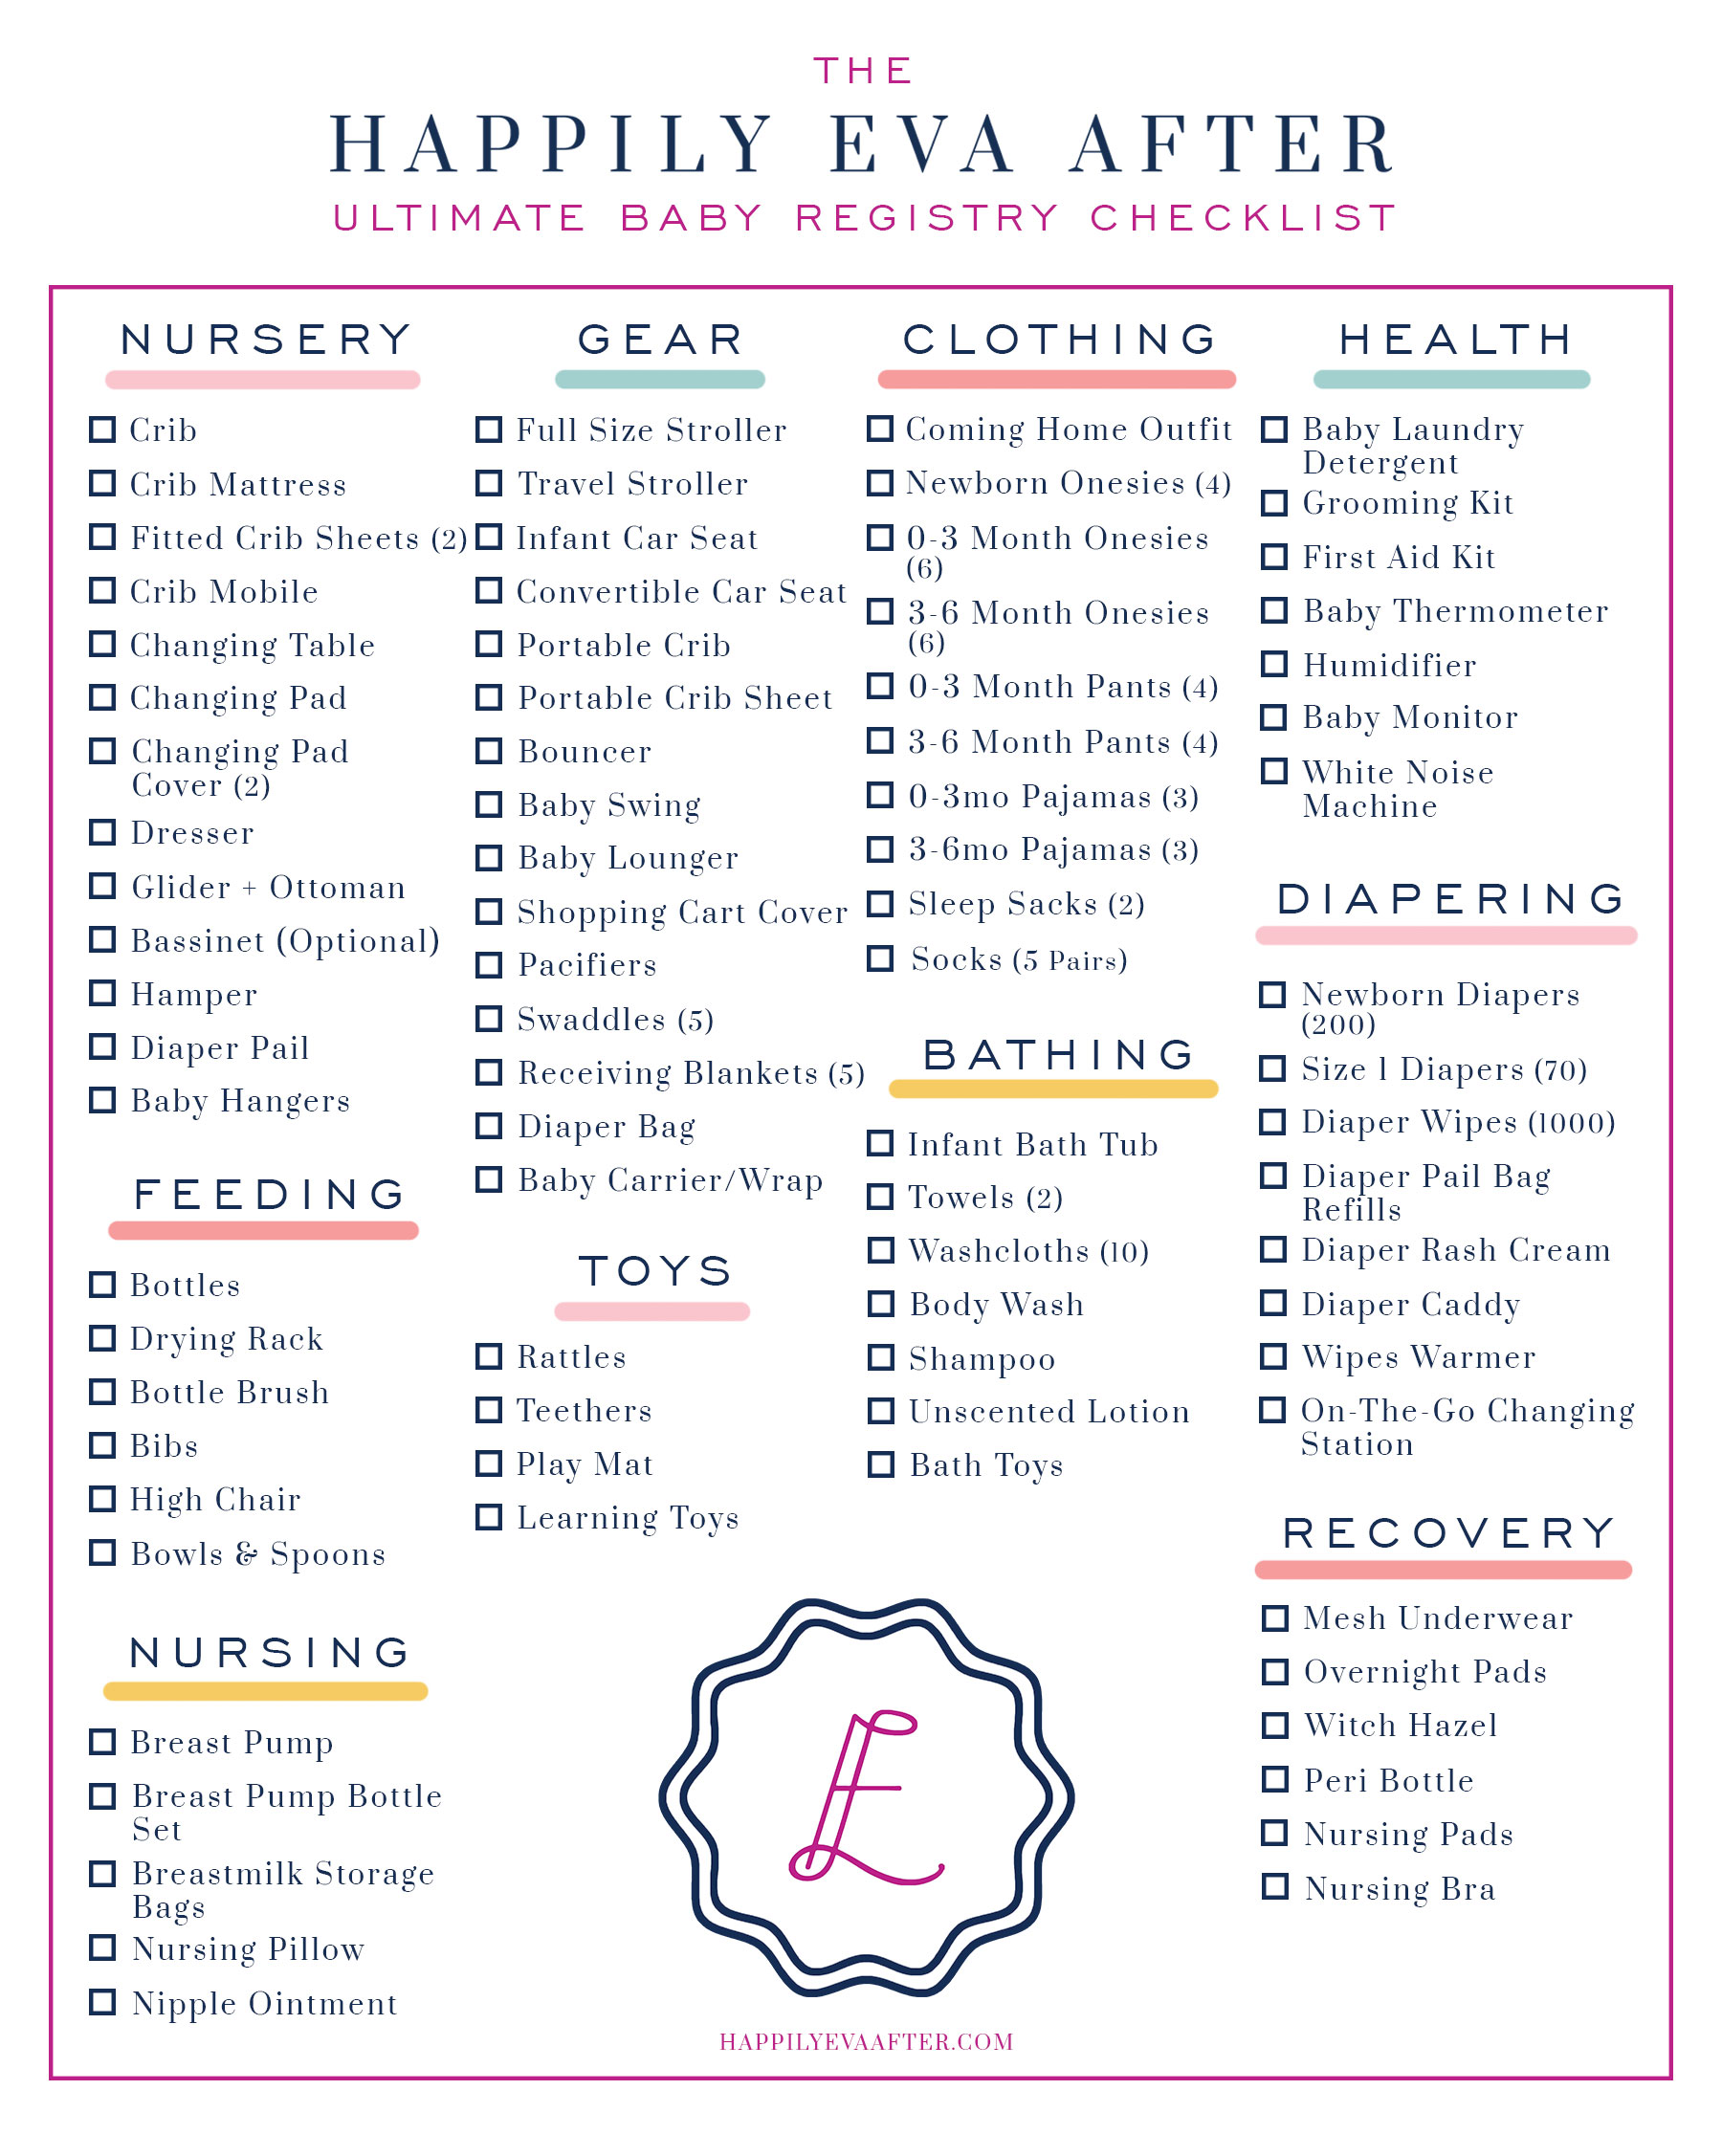 The Happily Eva After Ultimate Baby Registry Checklist